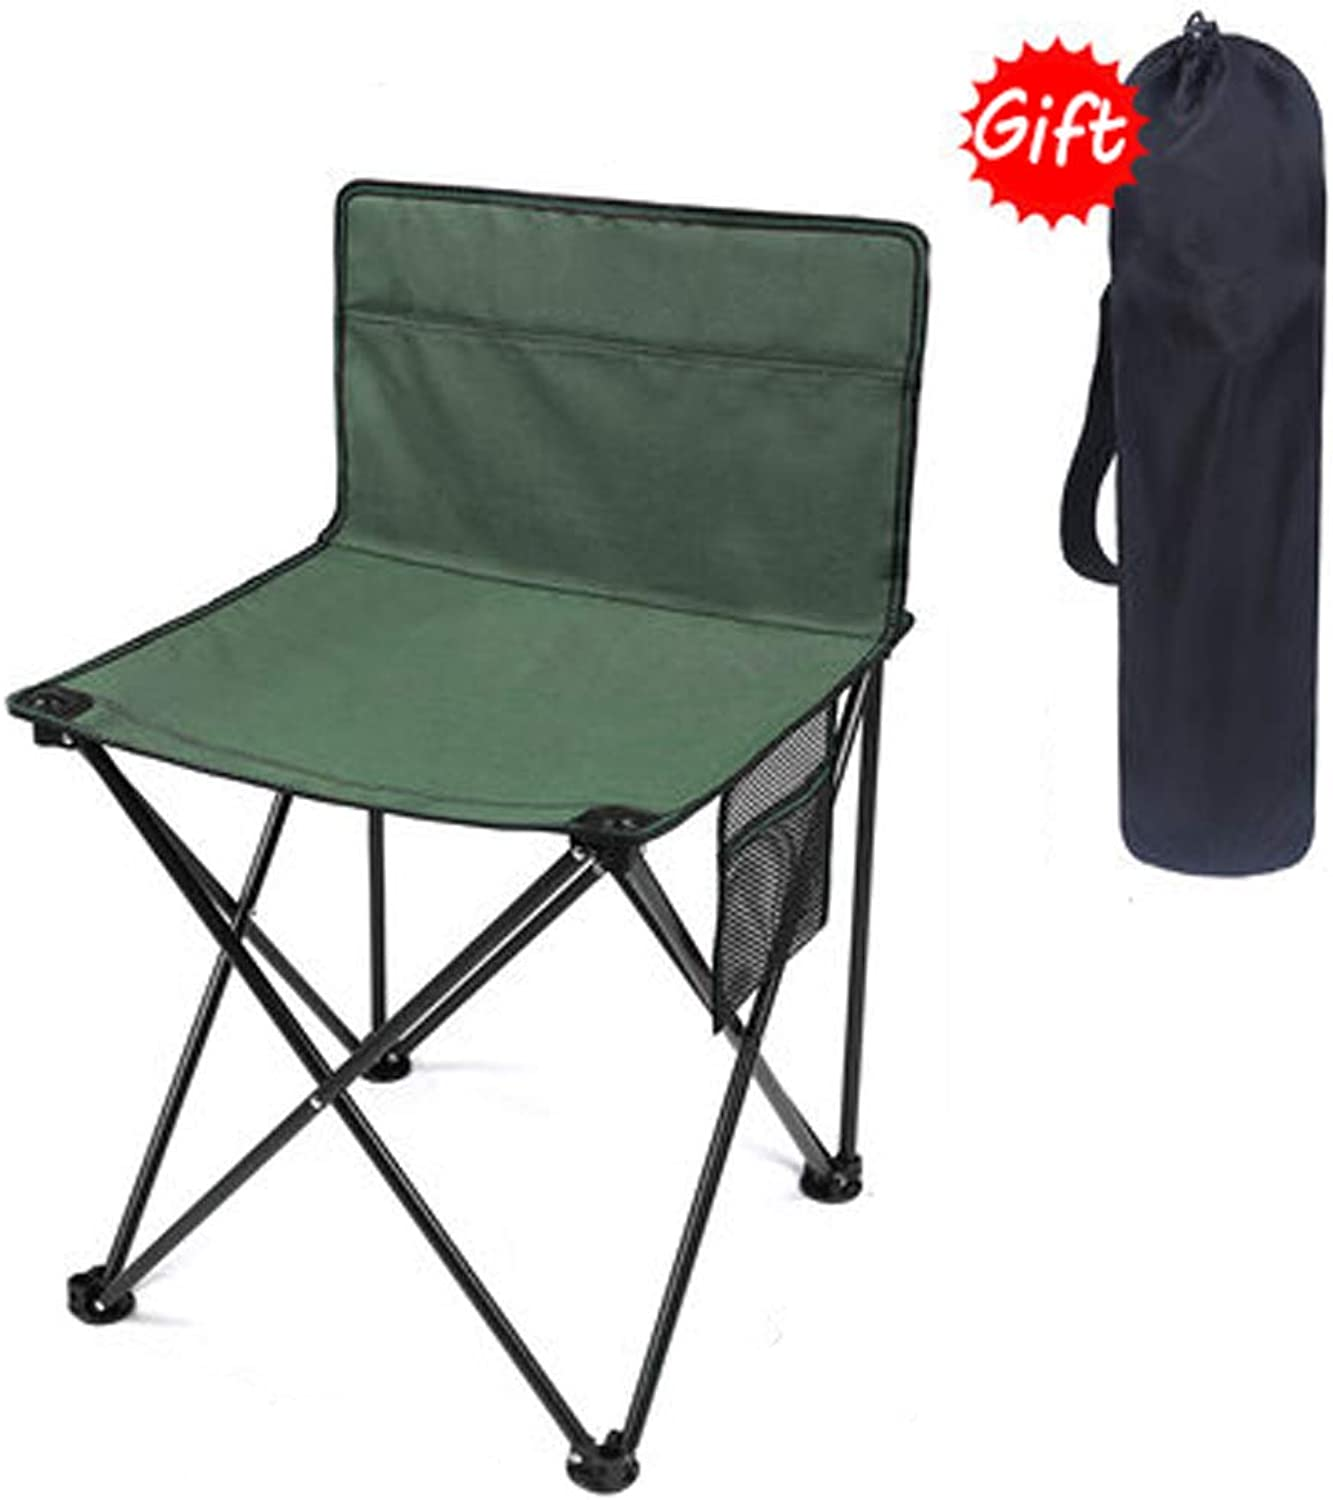 Portable Outdoor Lightweight Folding Camping Chair, Beach BBQ Camp Fishing Picnic Hiking Backyard Backpacking Sports Hunting Chairs Stool Table Set